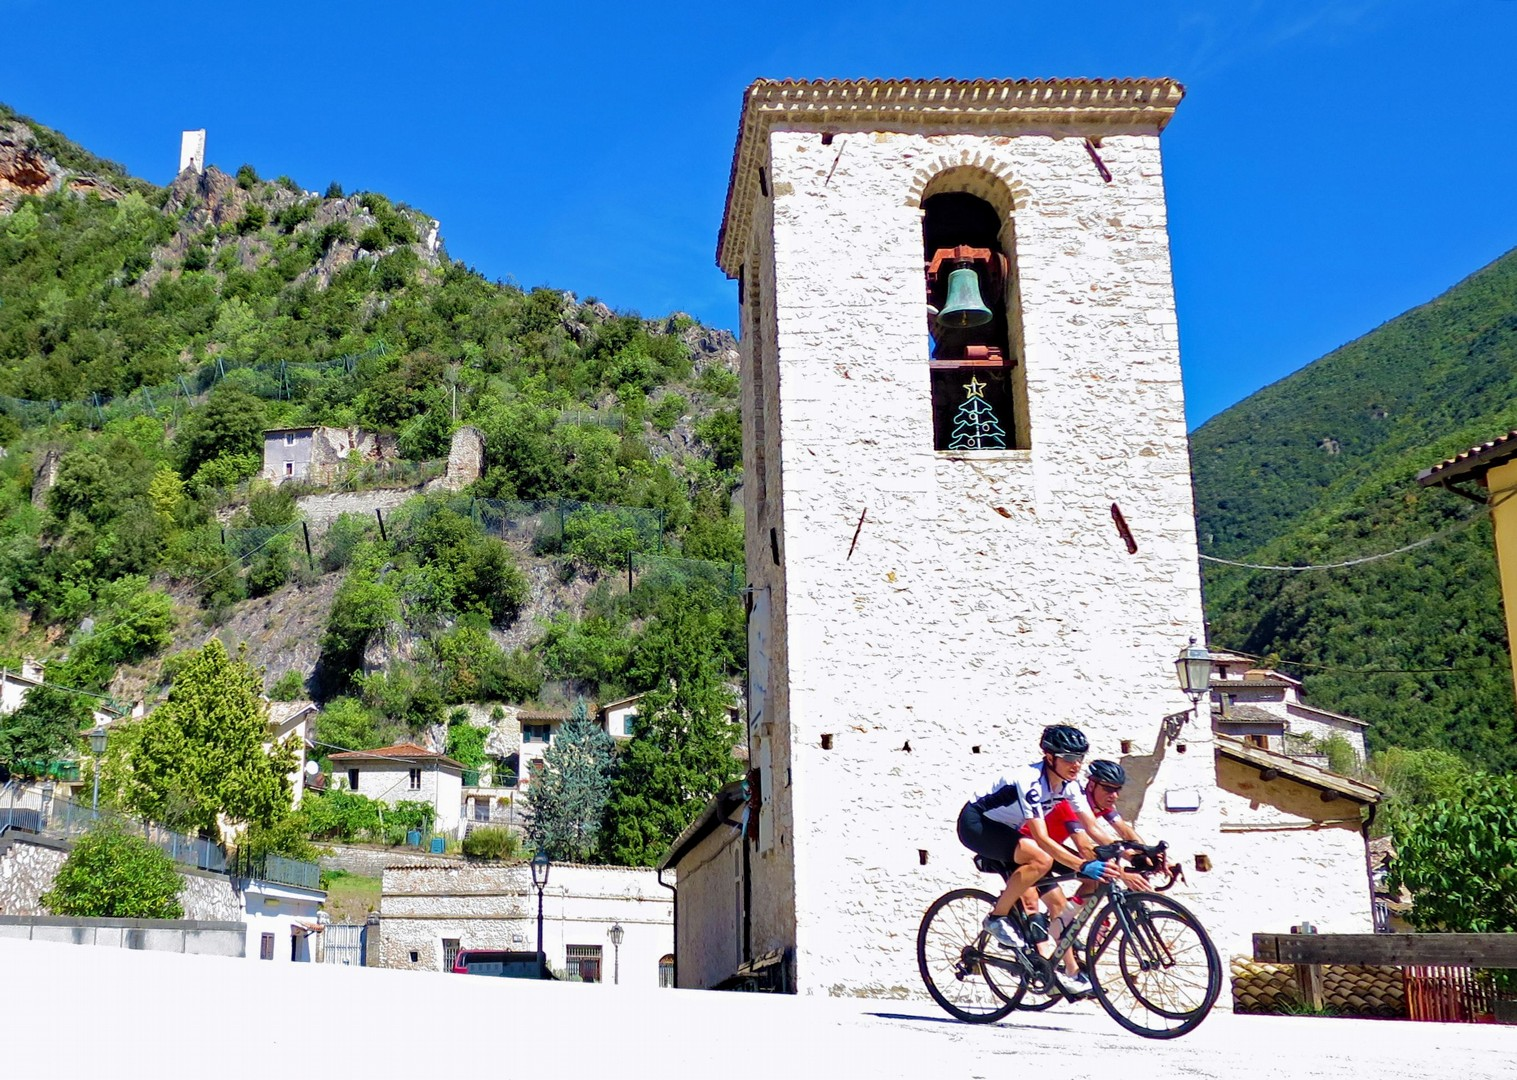 grand-traverse-guided-road-cycling-adventure.jpg - Italy - Grand Traverse - North to South - Guided Road Cycling Holiday (17 days) - Road Cycling